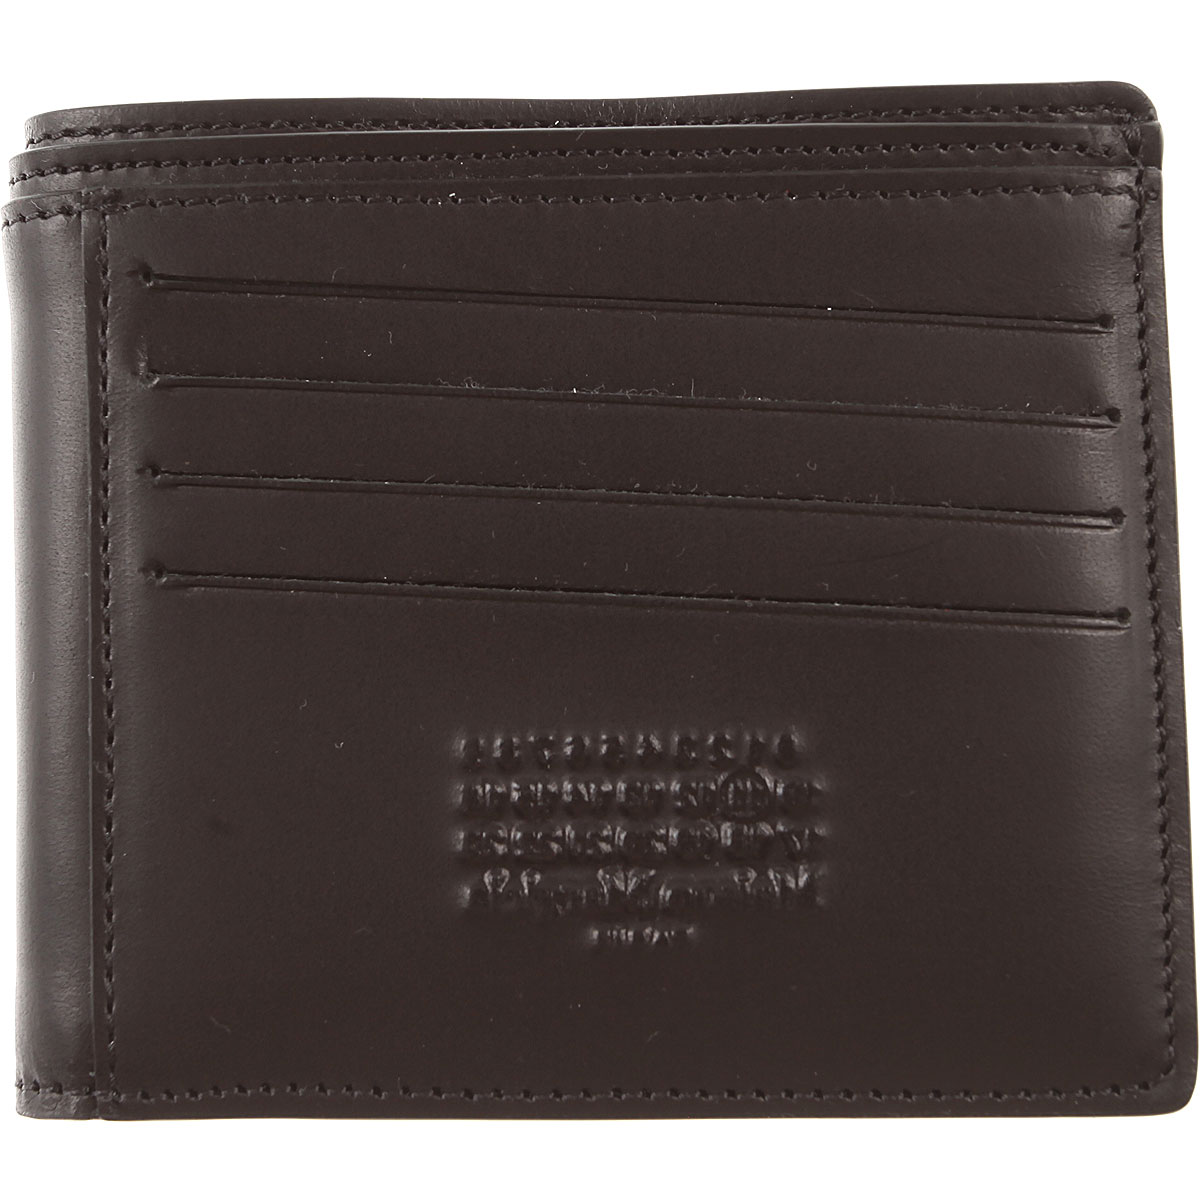 Maison Martin Margiela Wallet for Men Black USA - GOOFASH